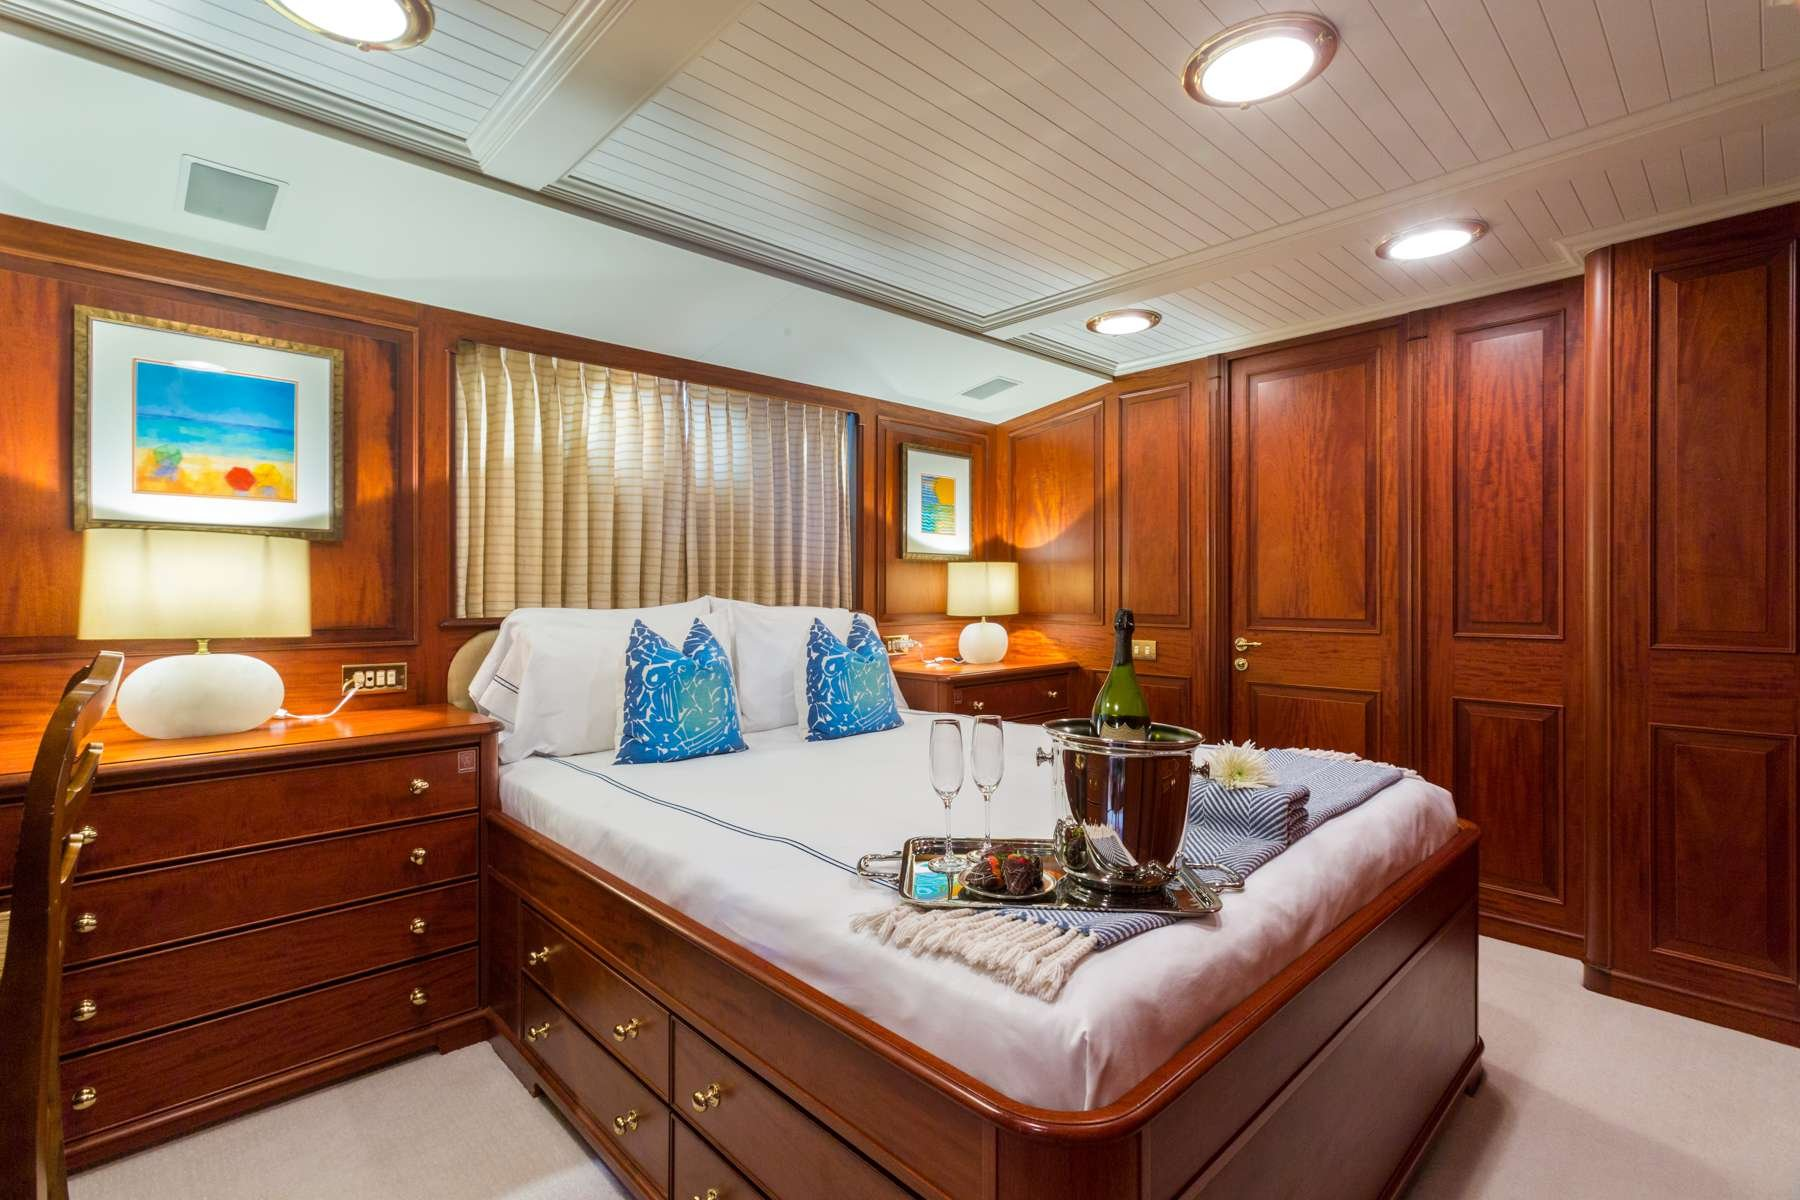 Motor Yacht 'LADY J' Queen Guest Stateroom, 12 PAX, 9 Crew, 142.00 Ft, 43.00 Meters, Built 1997, Palmer Johnson, Refit Year 2017